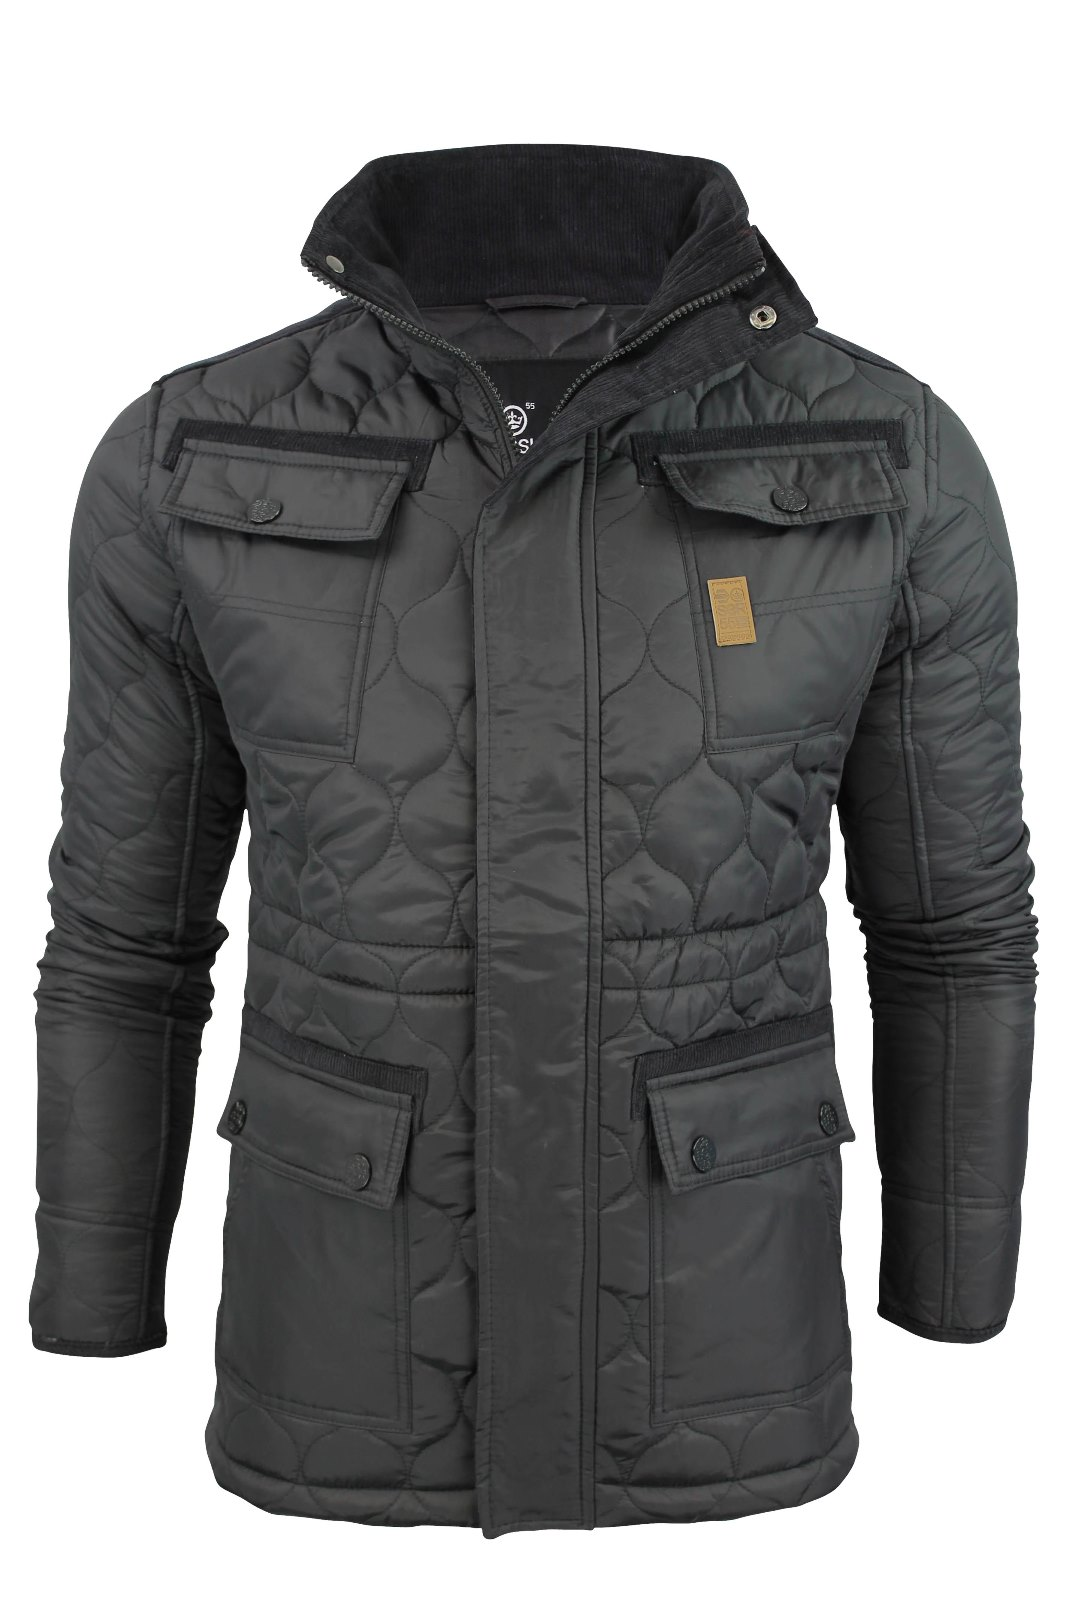 Mens crosshatch diamond quilted jacket coat padded ebay for Quilted jackets for men